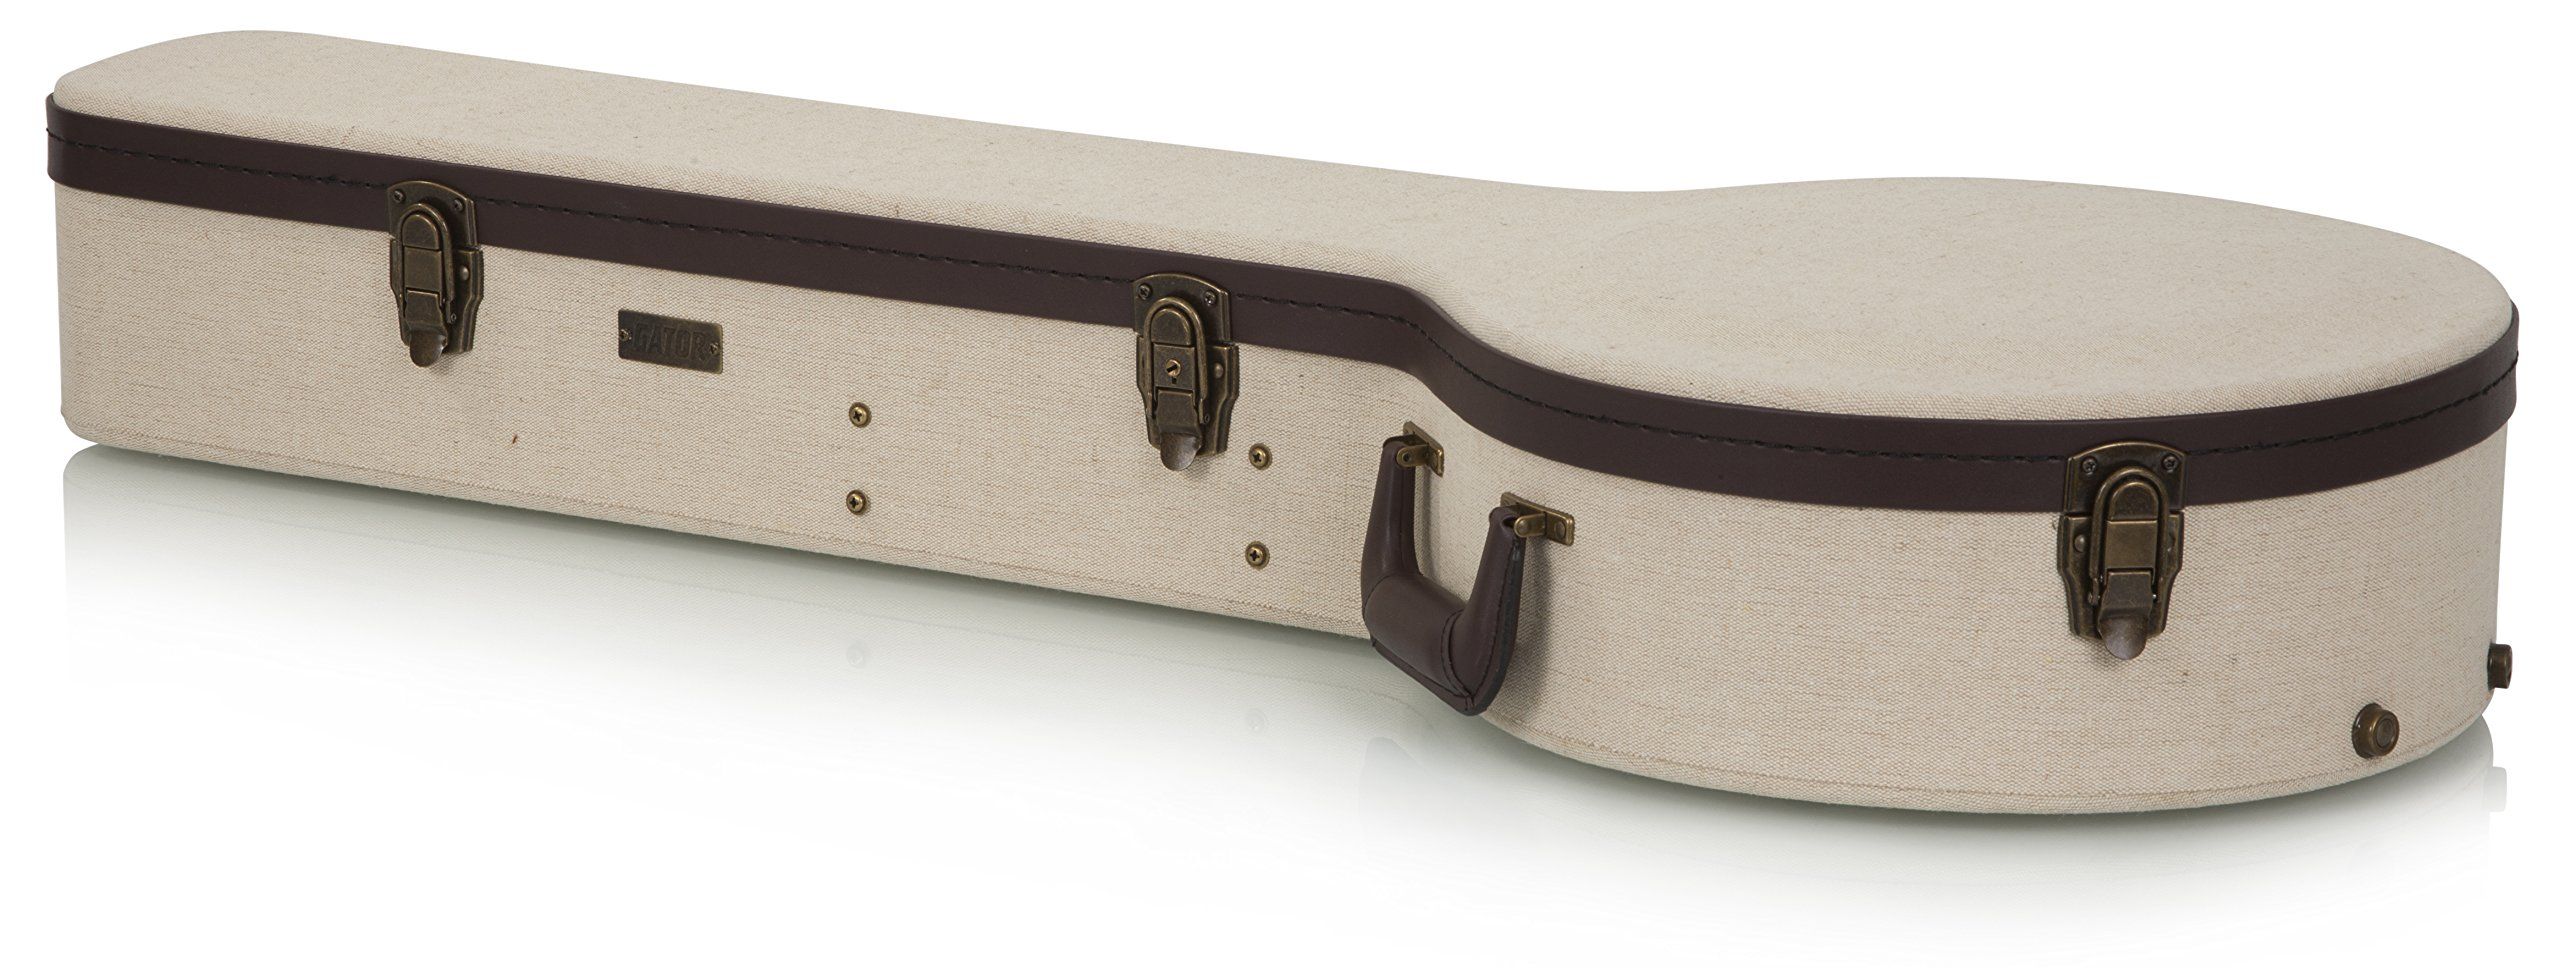 Gator Cases Journeyman Series Deluxe Wood Case for Banjos (GW-JM BANJO XL) by Gator (Image #3)